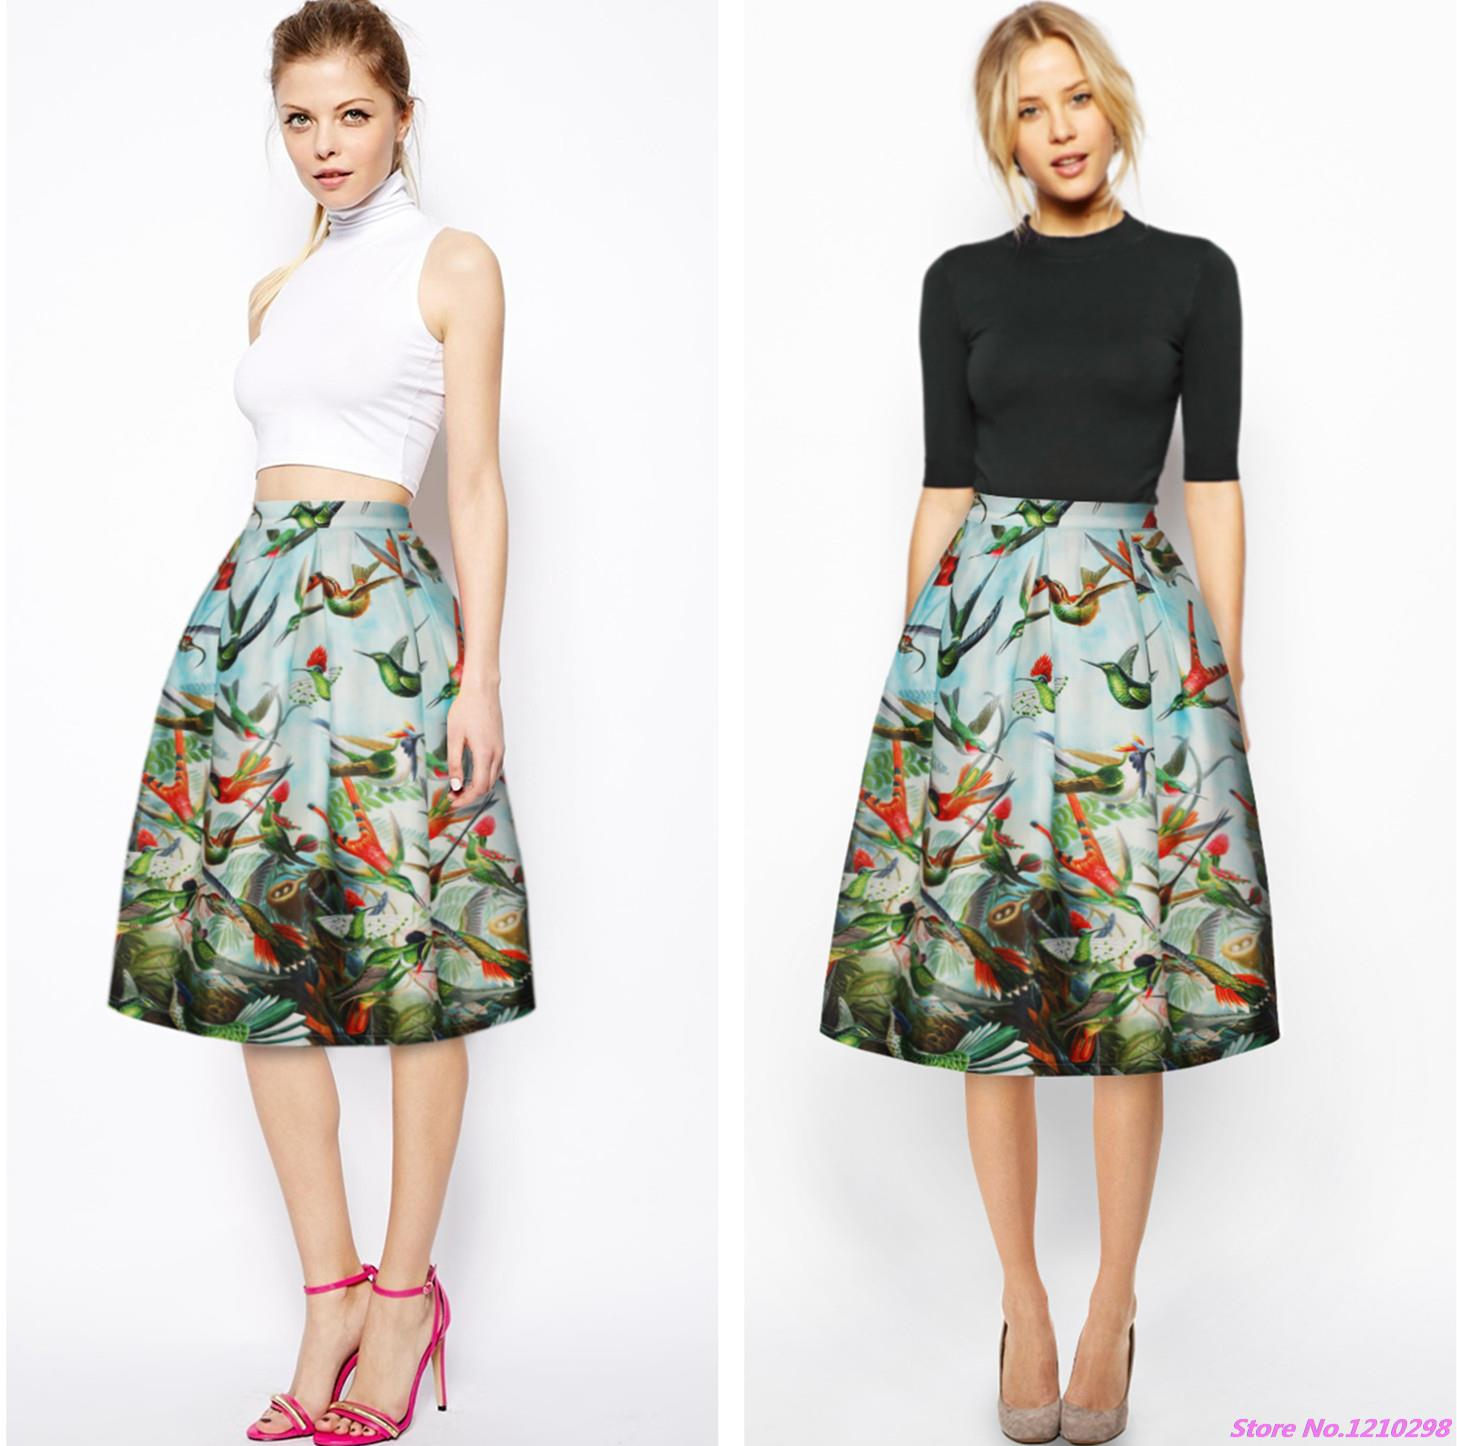 Shop the selection of knee length skirts at ModCloth! Find cute knee length skirts in a variety of chic colors, stylish silhouettes, and pretty patterns.